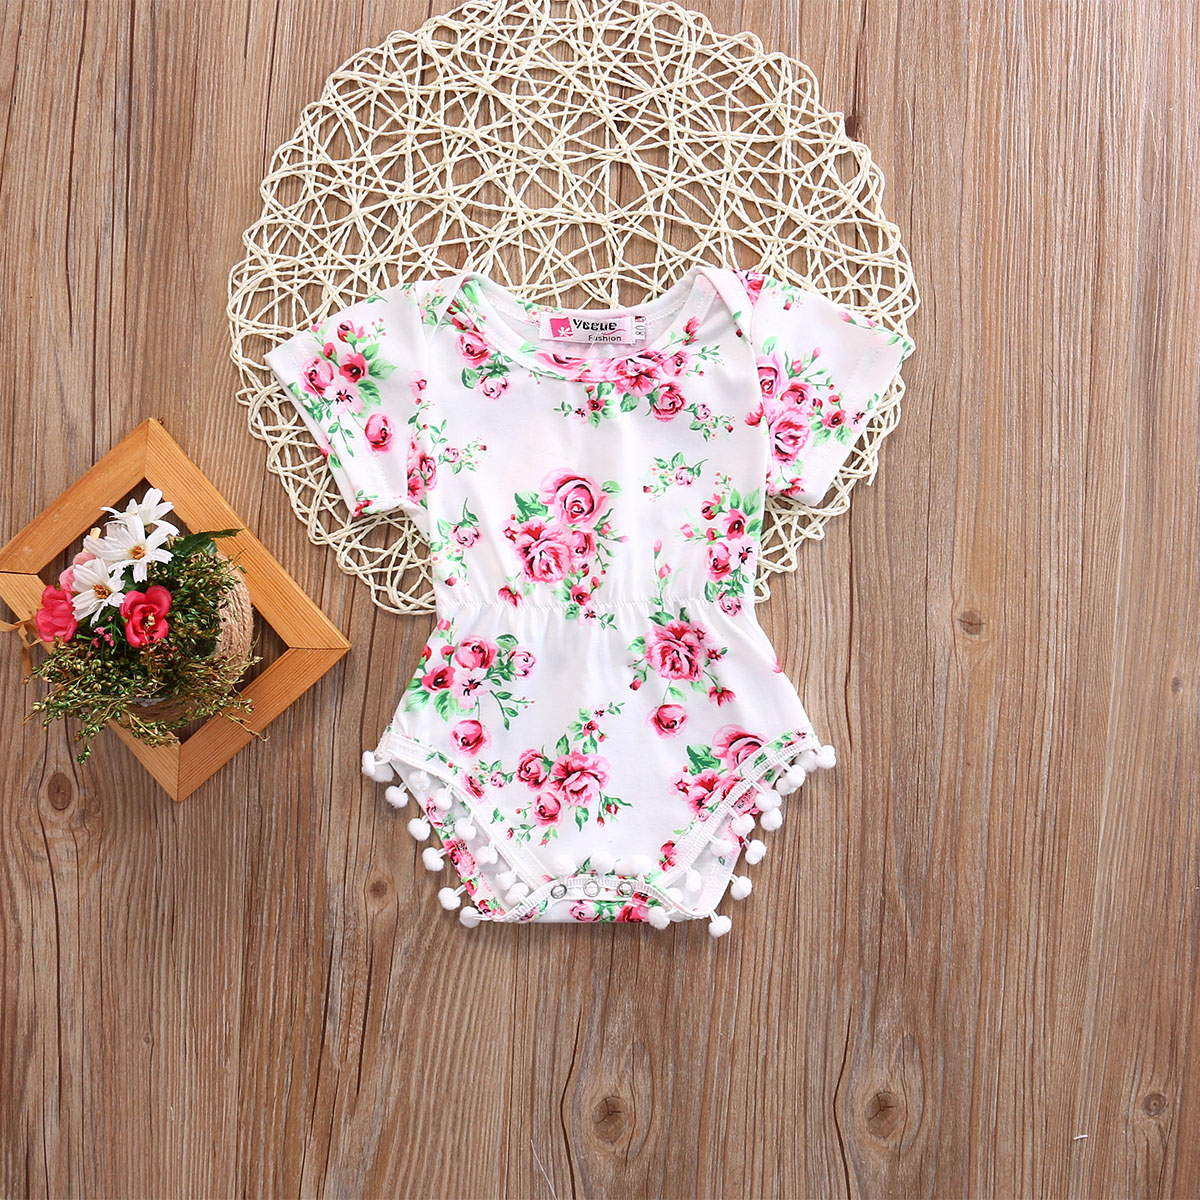 Newborn Baby Girl Kids Floral Romper Jumpsuit Outfits Sunsuit  bodysuit baby girl clothes Clothes 2017 summer newborn baby girl white lace romper jumpsuit floral infant clothes outfit sunsuit